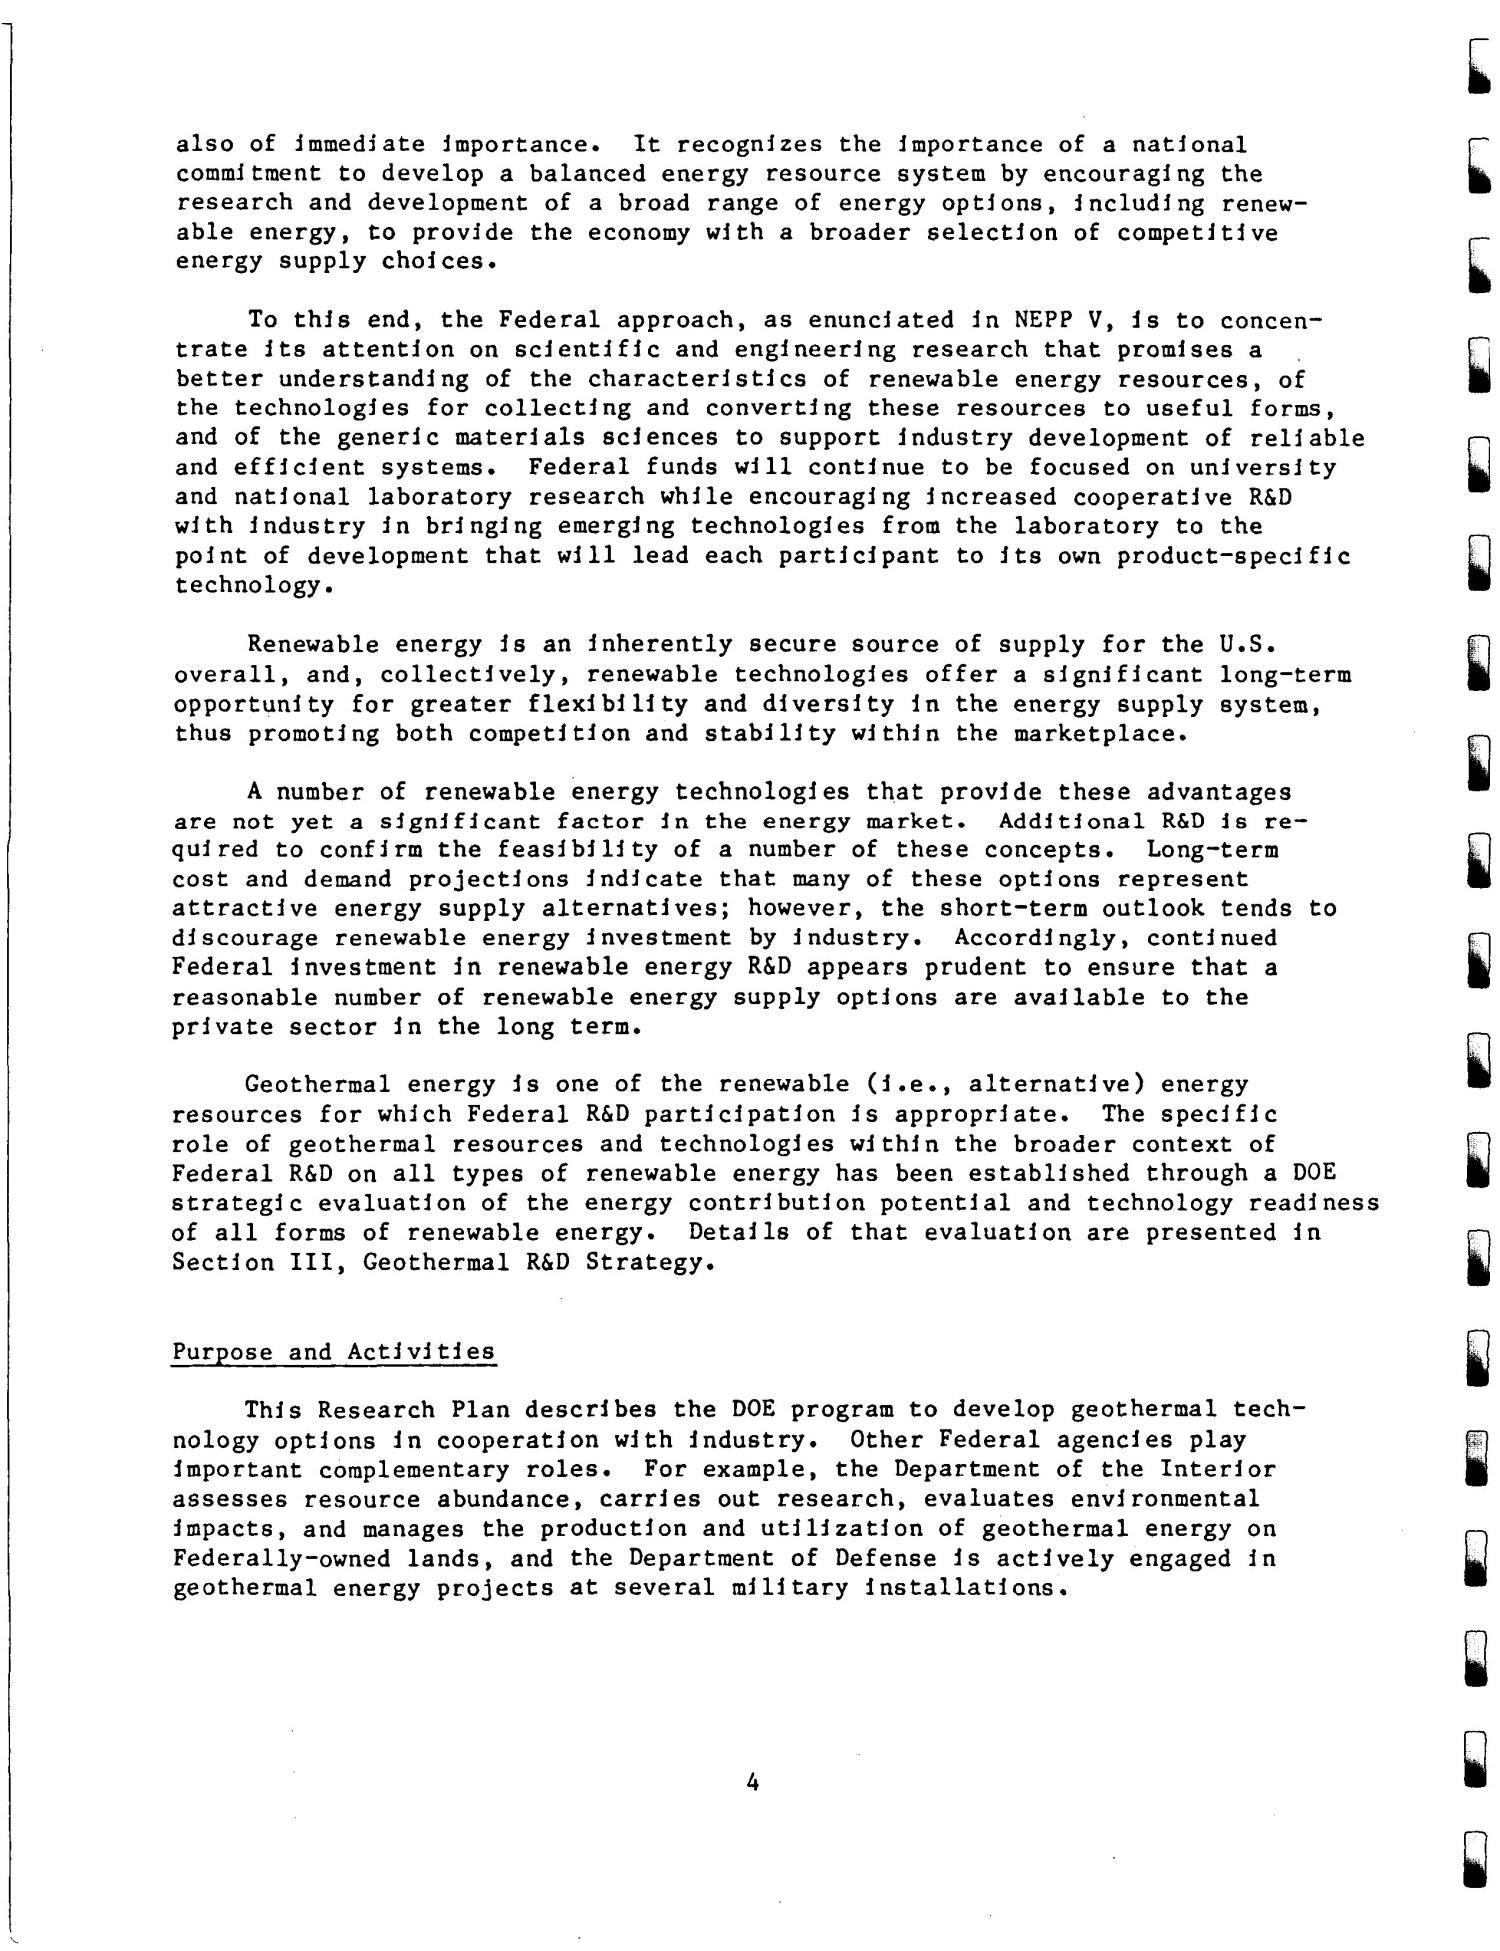 U.S Geothermal Energy Program five year research plan, 1986--1990. Draft of July 1986                                                                                                      [Sequence #]: 11 of 82